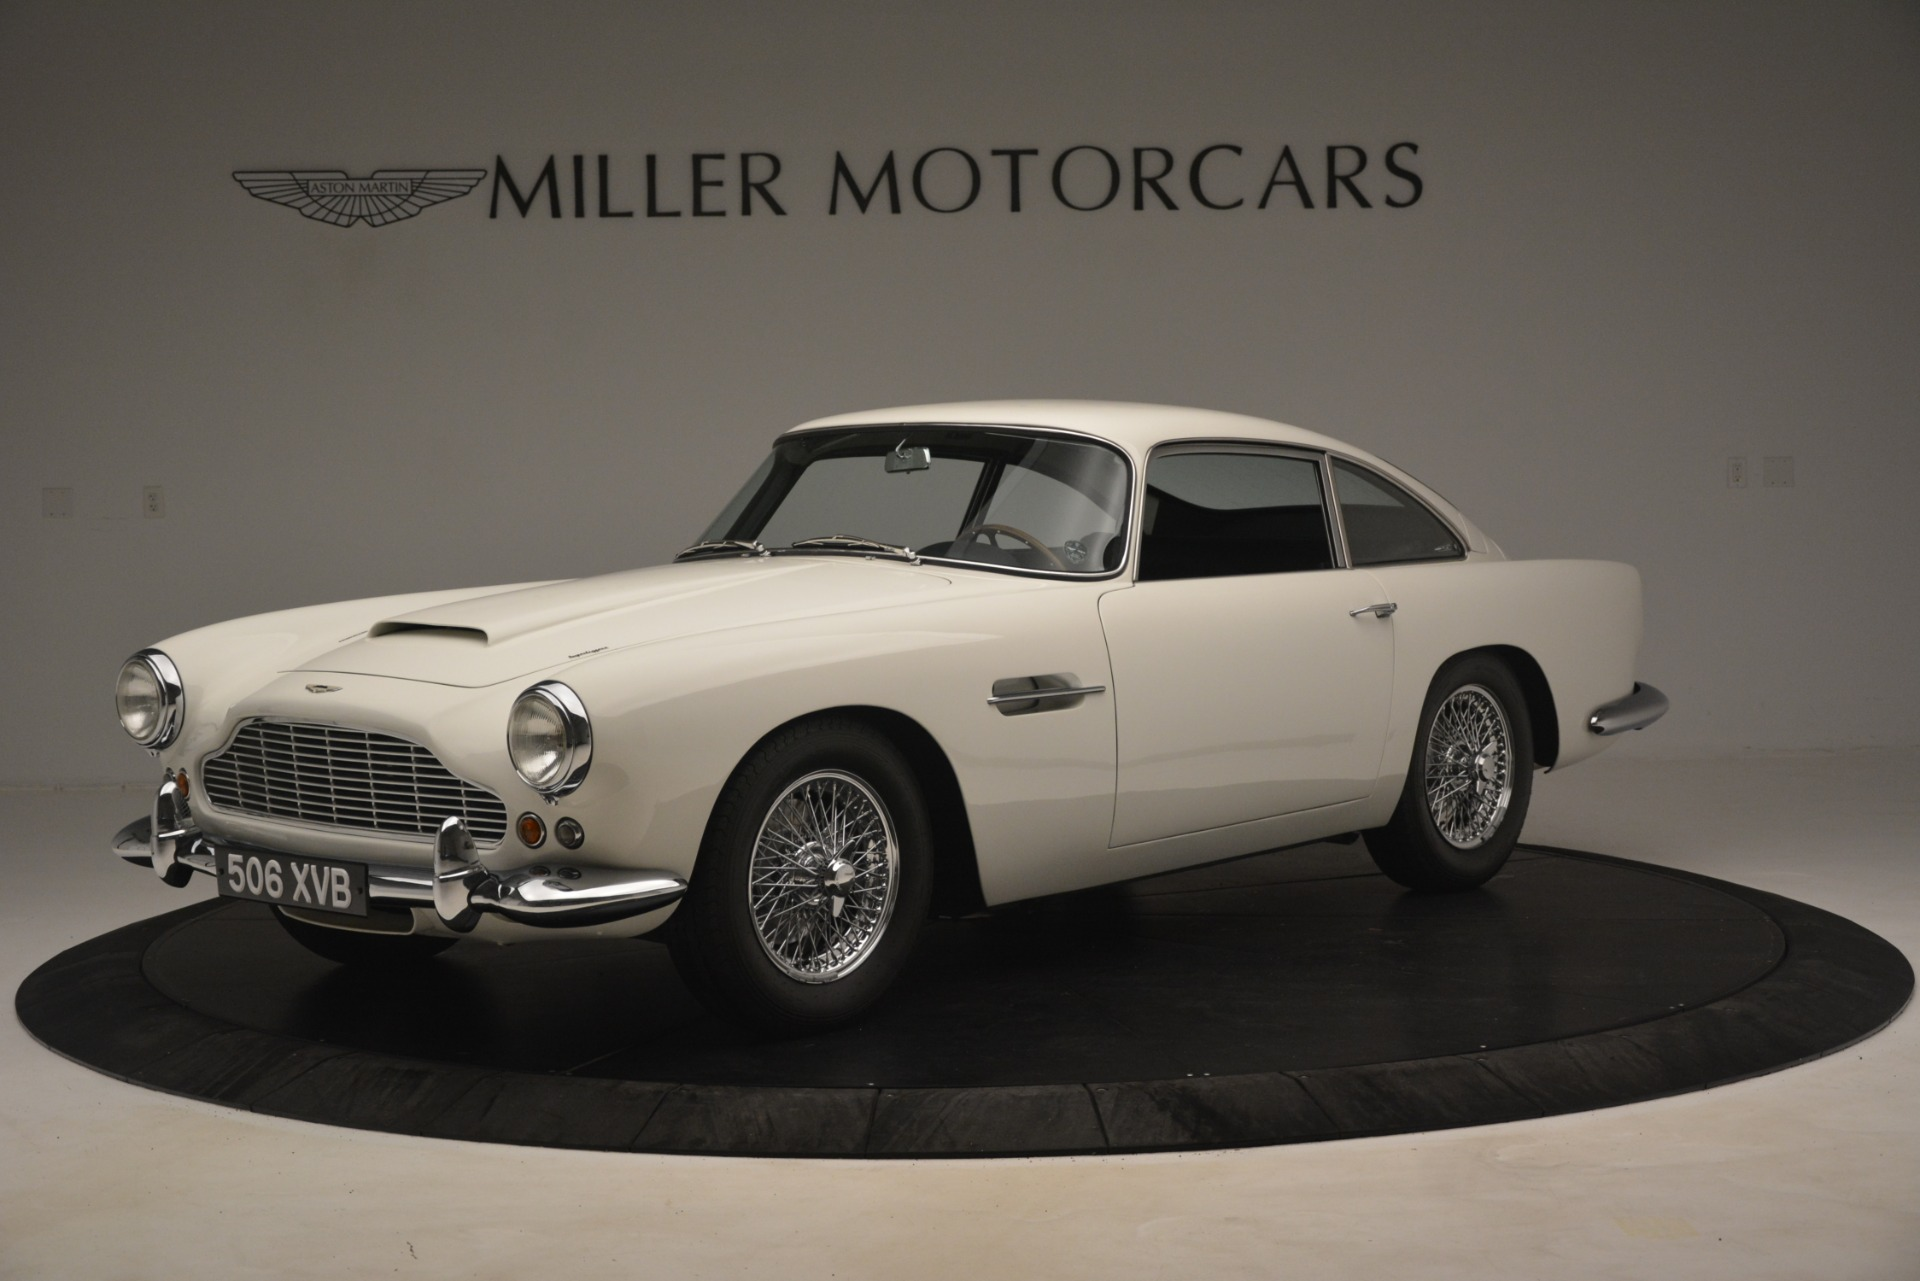 Used 1961 Aston Martin DB4 Series IV Coupe for sale $625,900 at Bugatti of Greenwich in Greenwich CT 06830 1